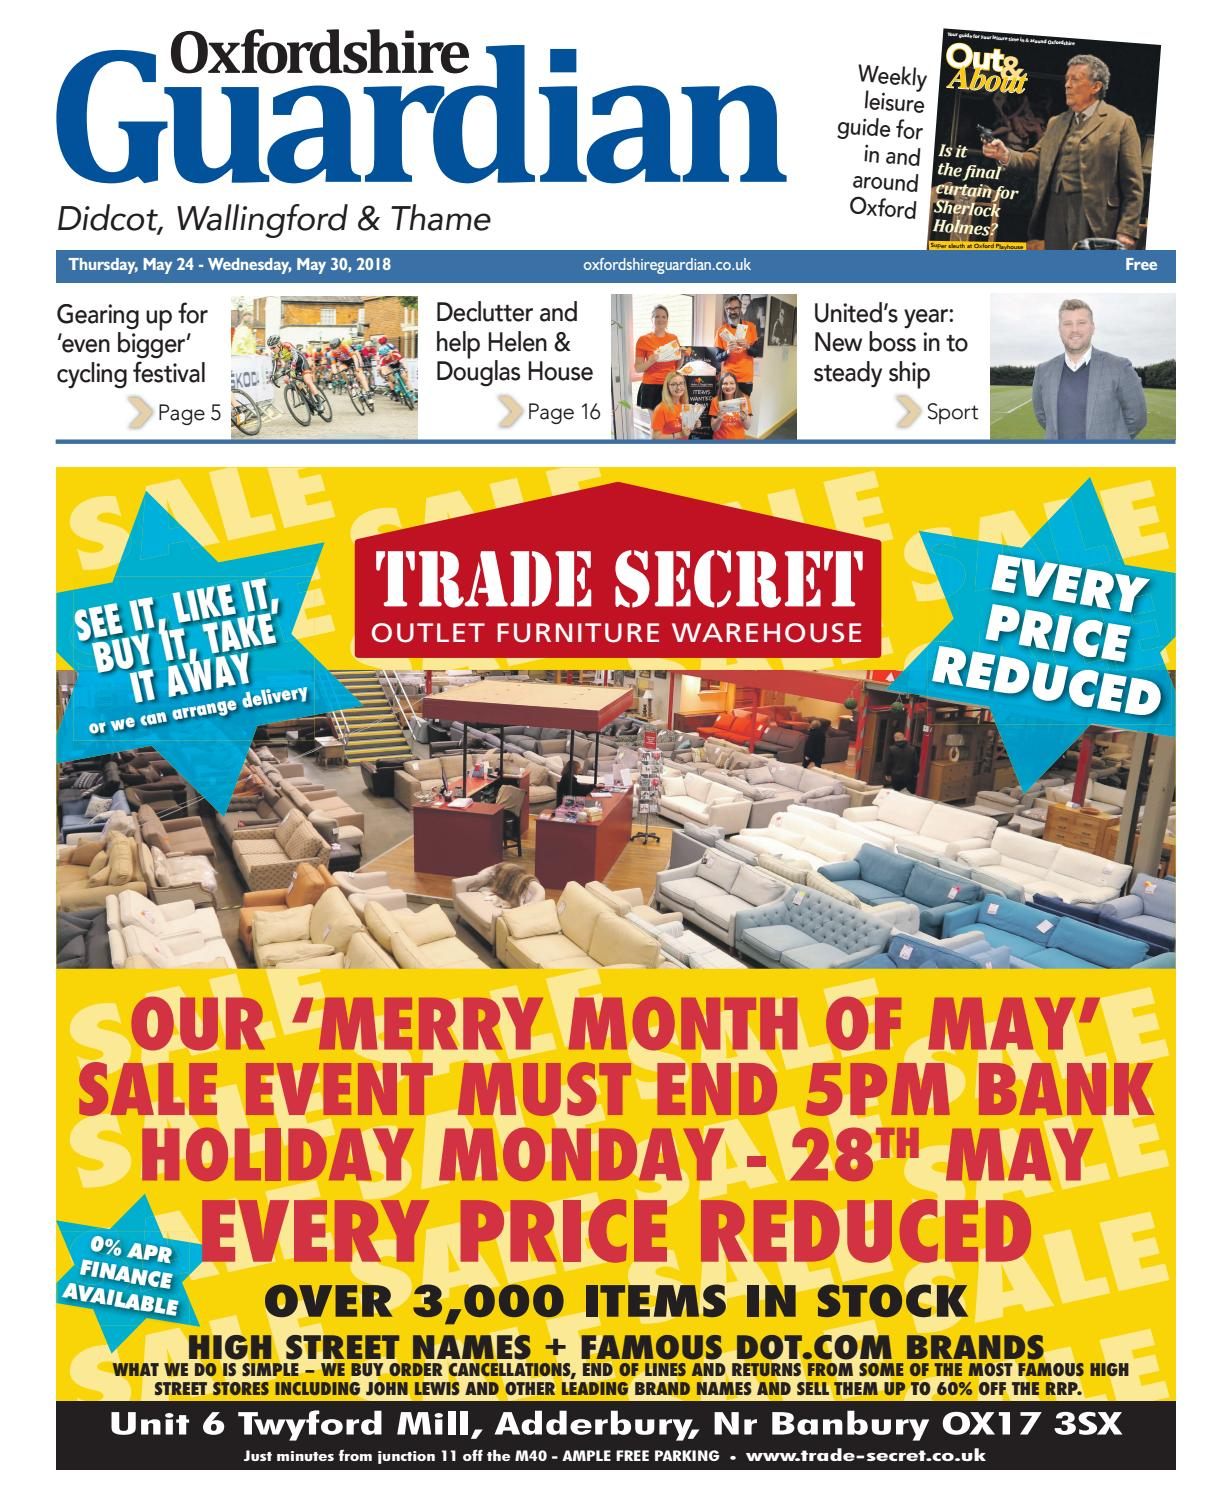 24 may 2018 oxfordshire guardian didcot by Taylor Newspapers - issuu e2dc25e9329